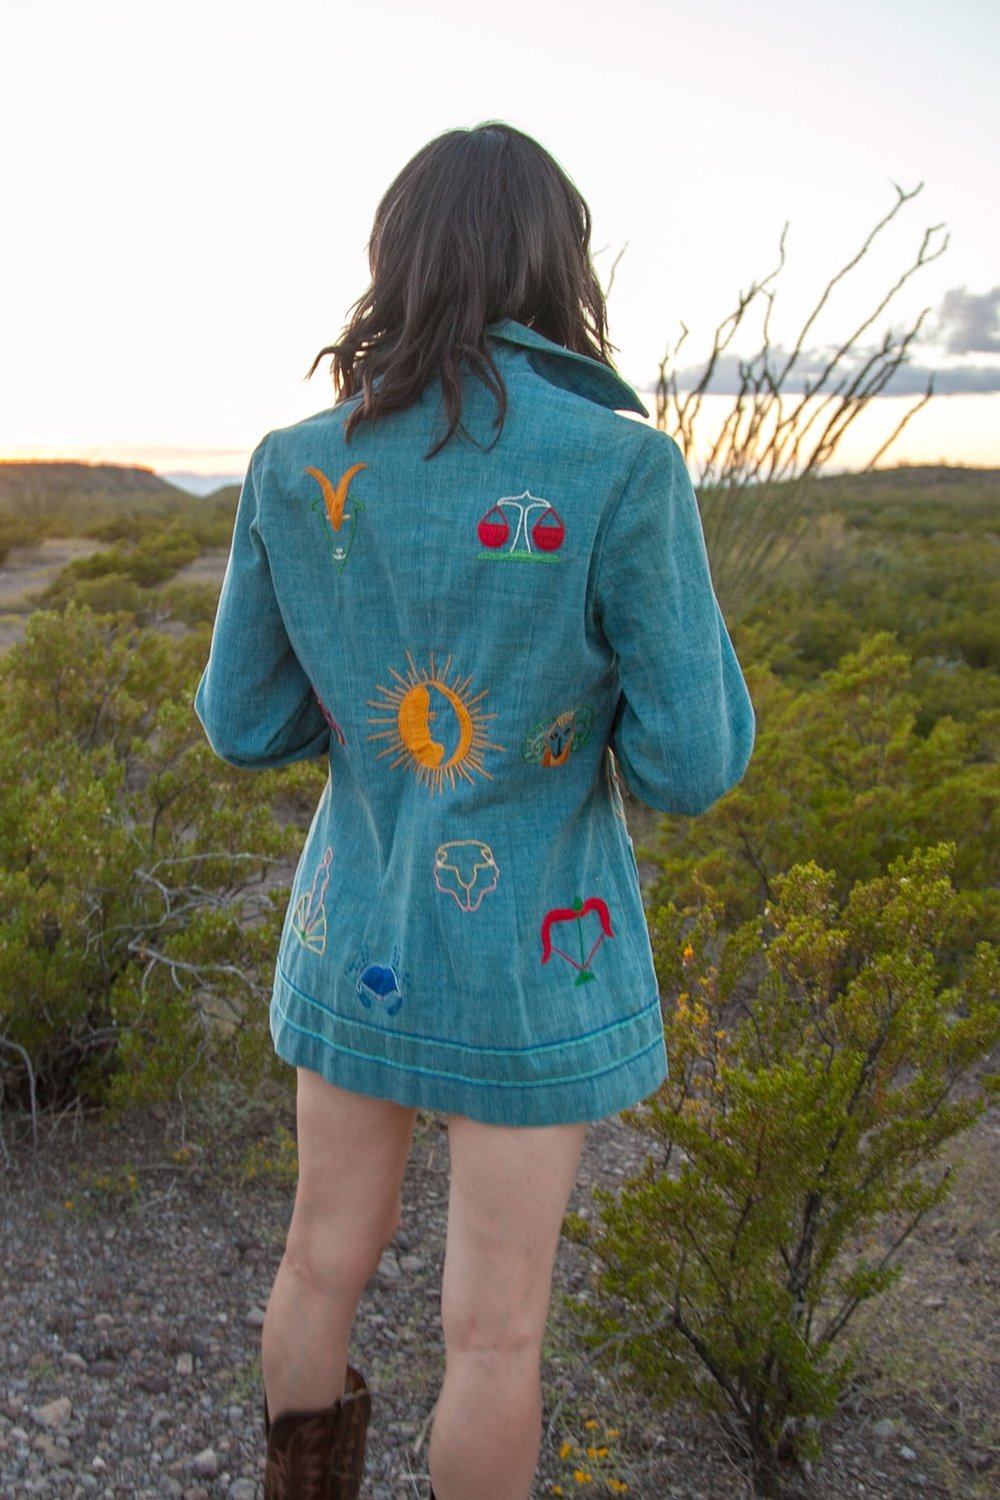 1970s zodiac denim jacket from Dalena Vintage.